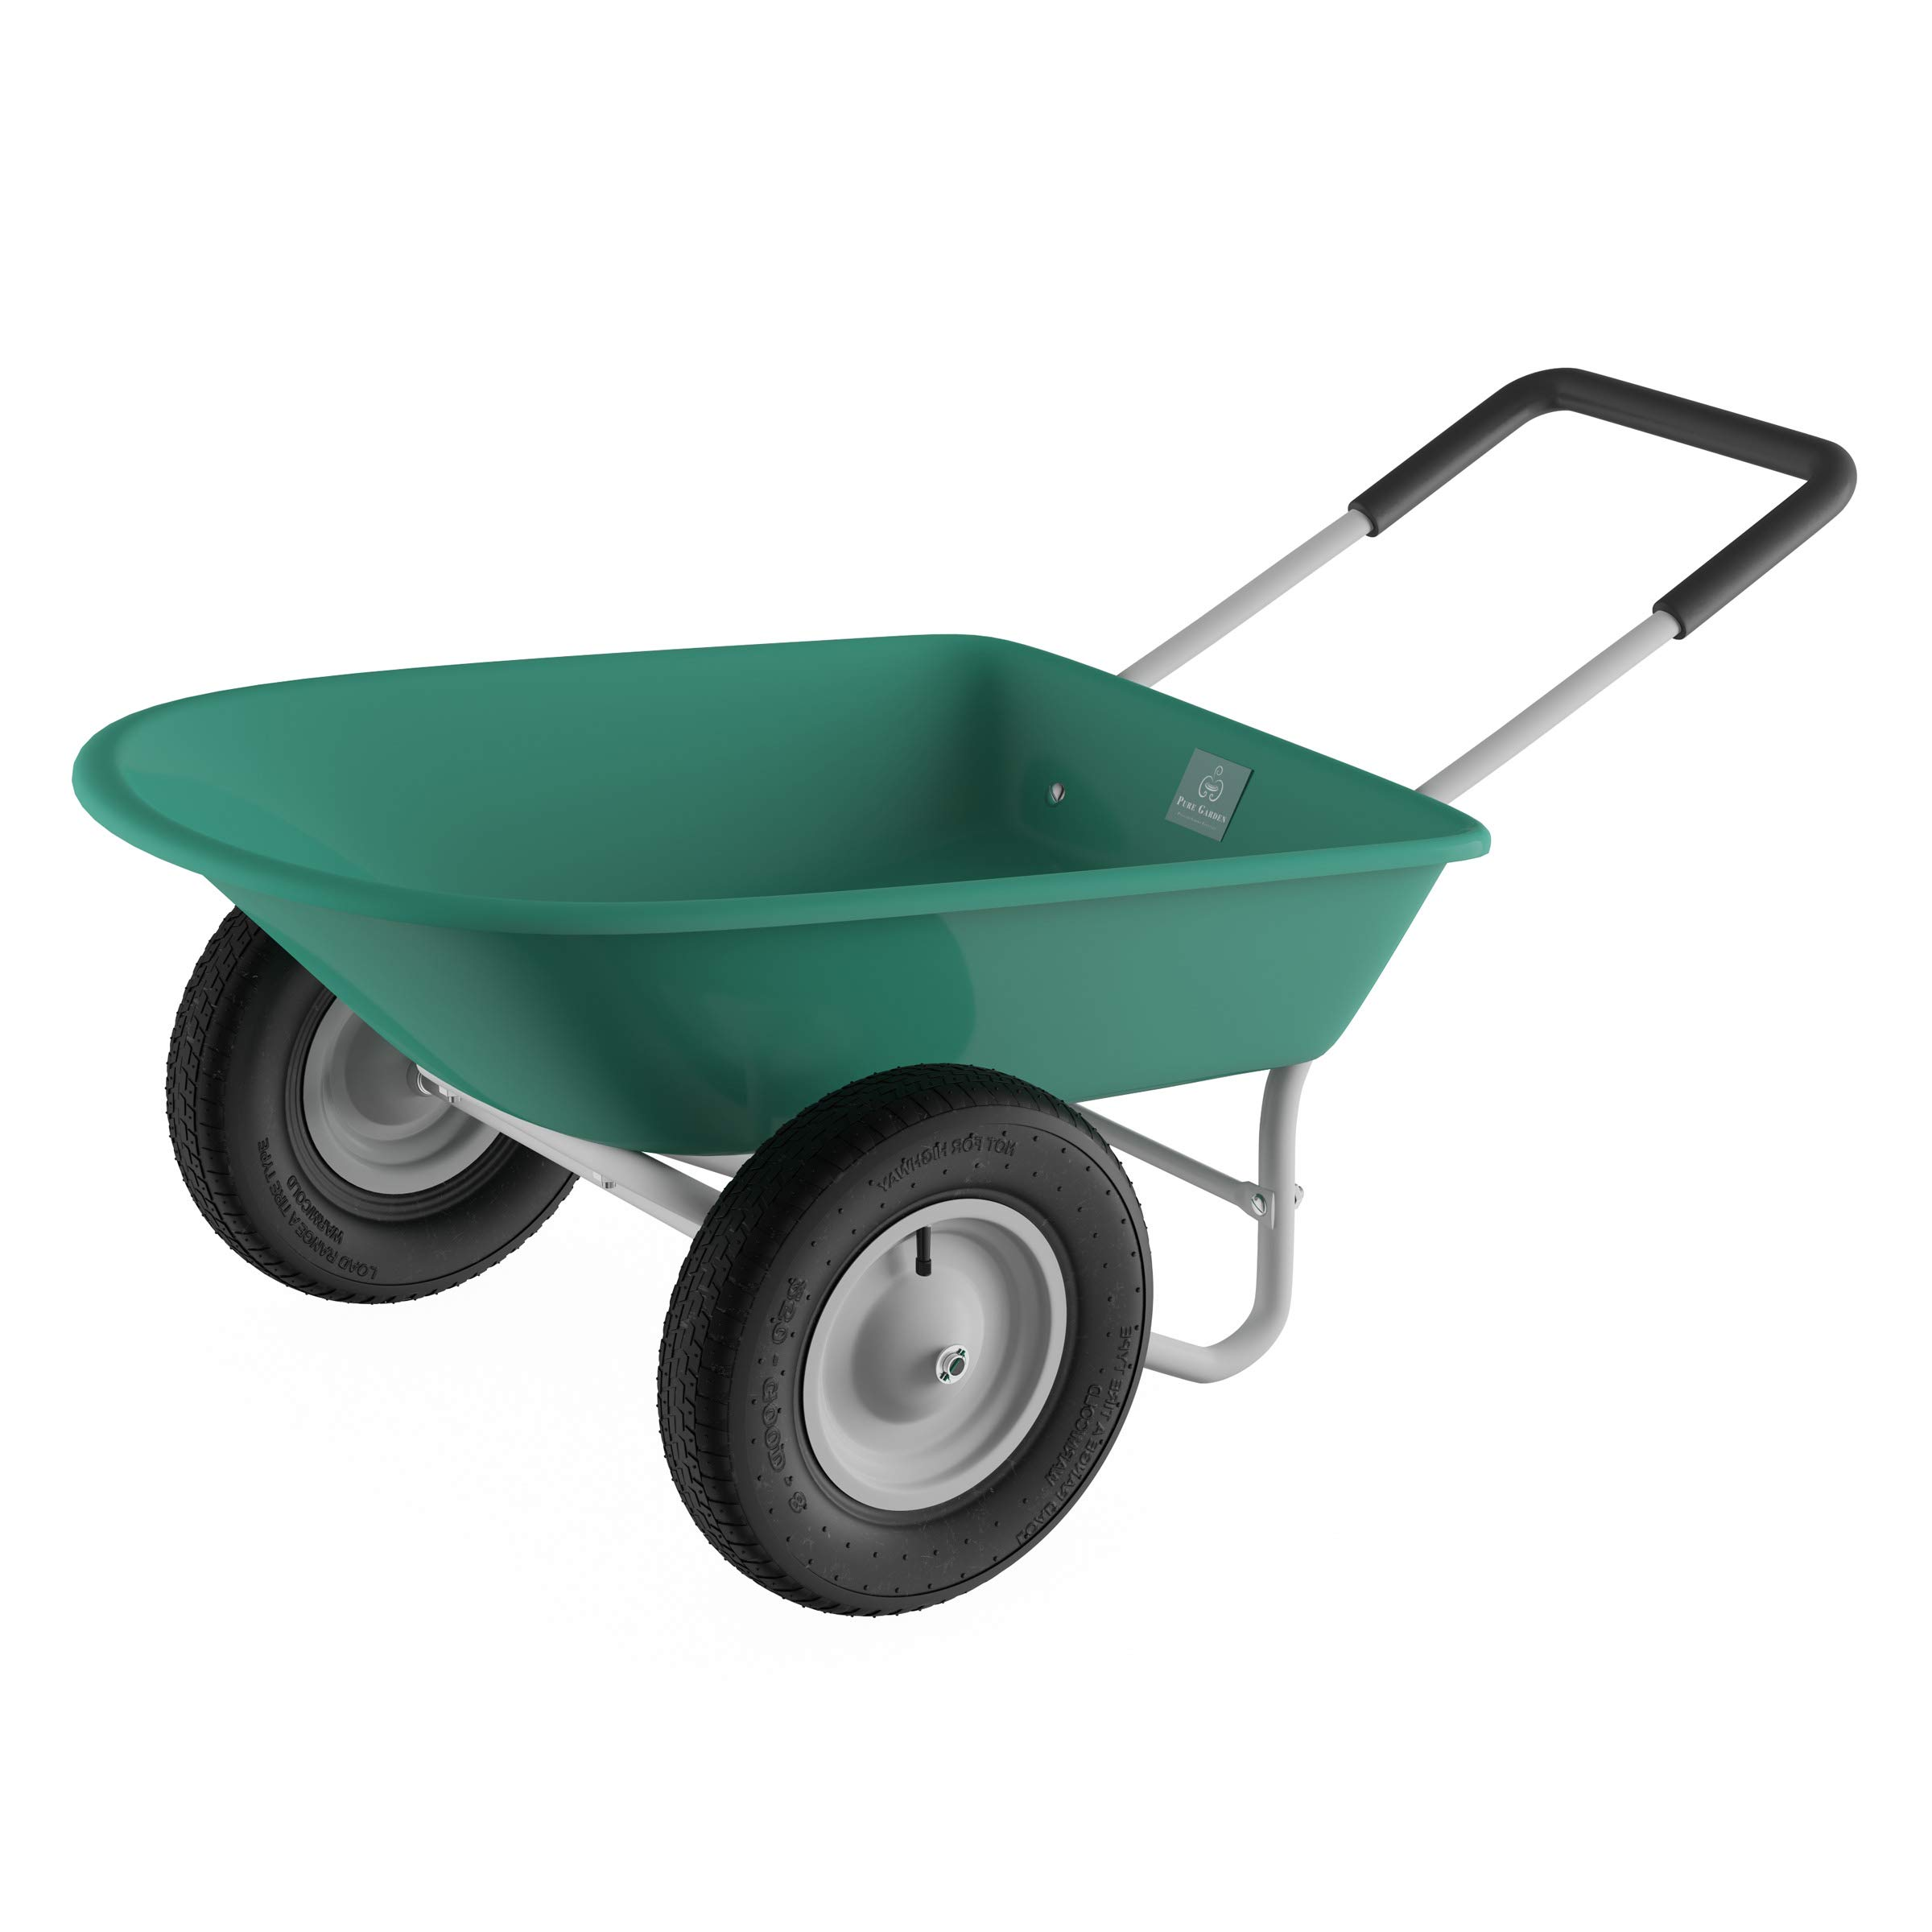 Pure Garden (PURNC) 50-LG1079 Pure 2-Wheeled Garden Wheelbarrow – Large Capacity Rolling Utility Dump Cart for Residential DIY Landscaping, Lawn Care and Remodeling by Pure Garden (PURNC) (Image #5)